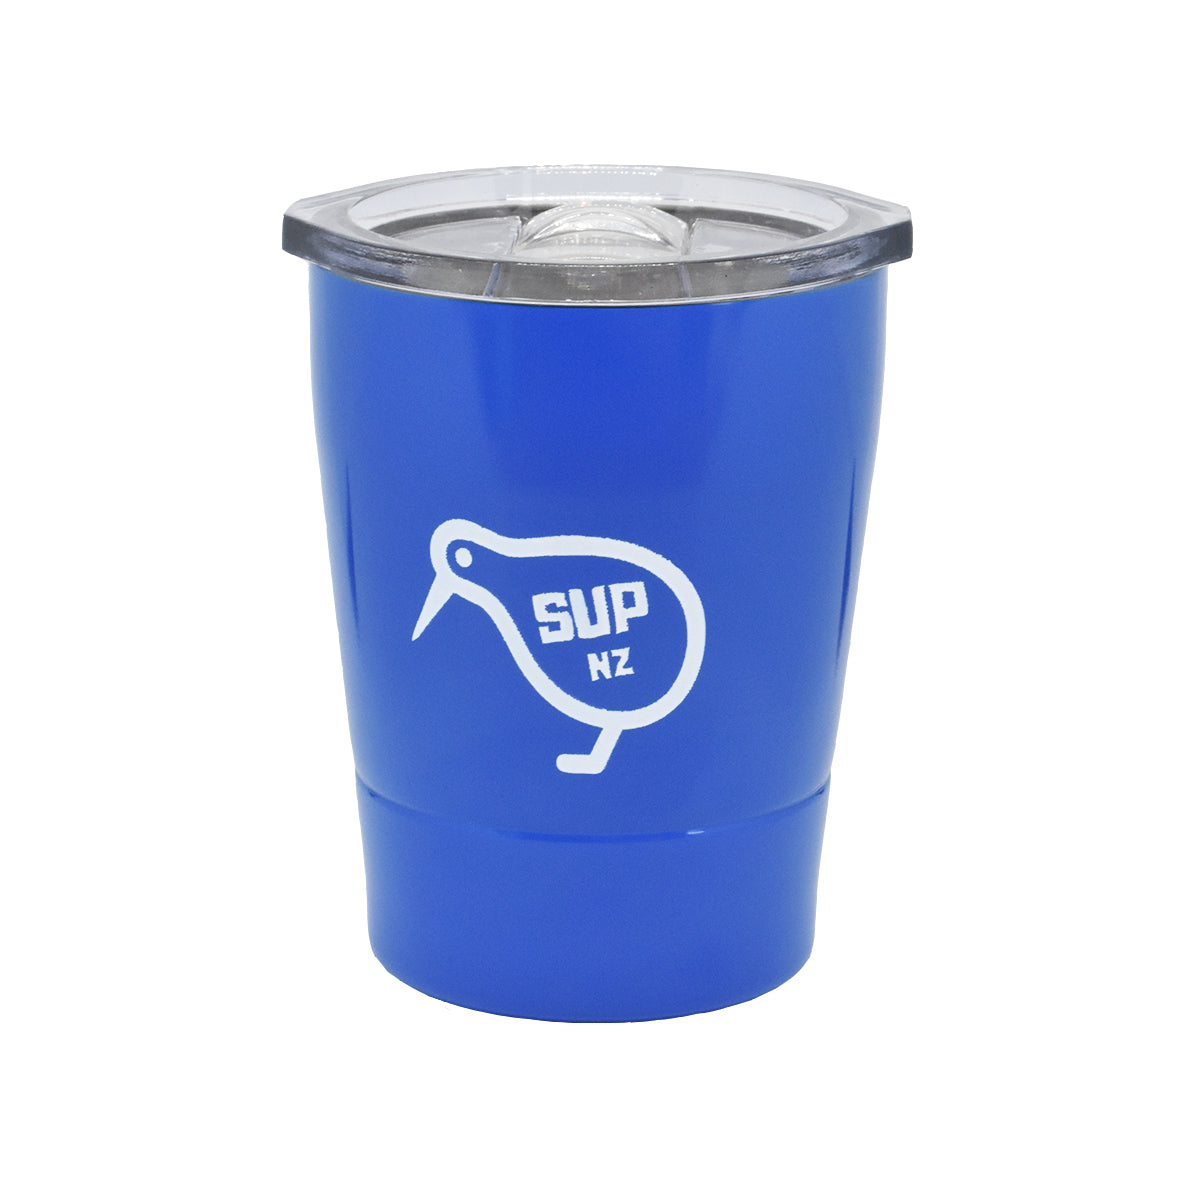 8oz stainless steel reusable cup blue